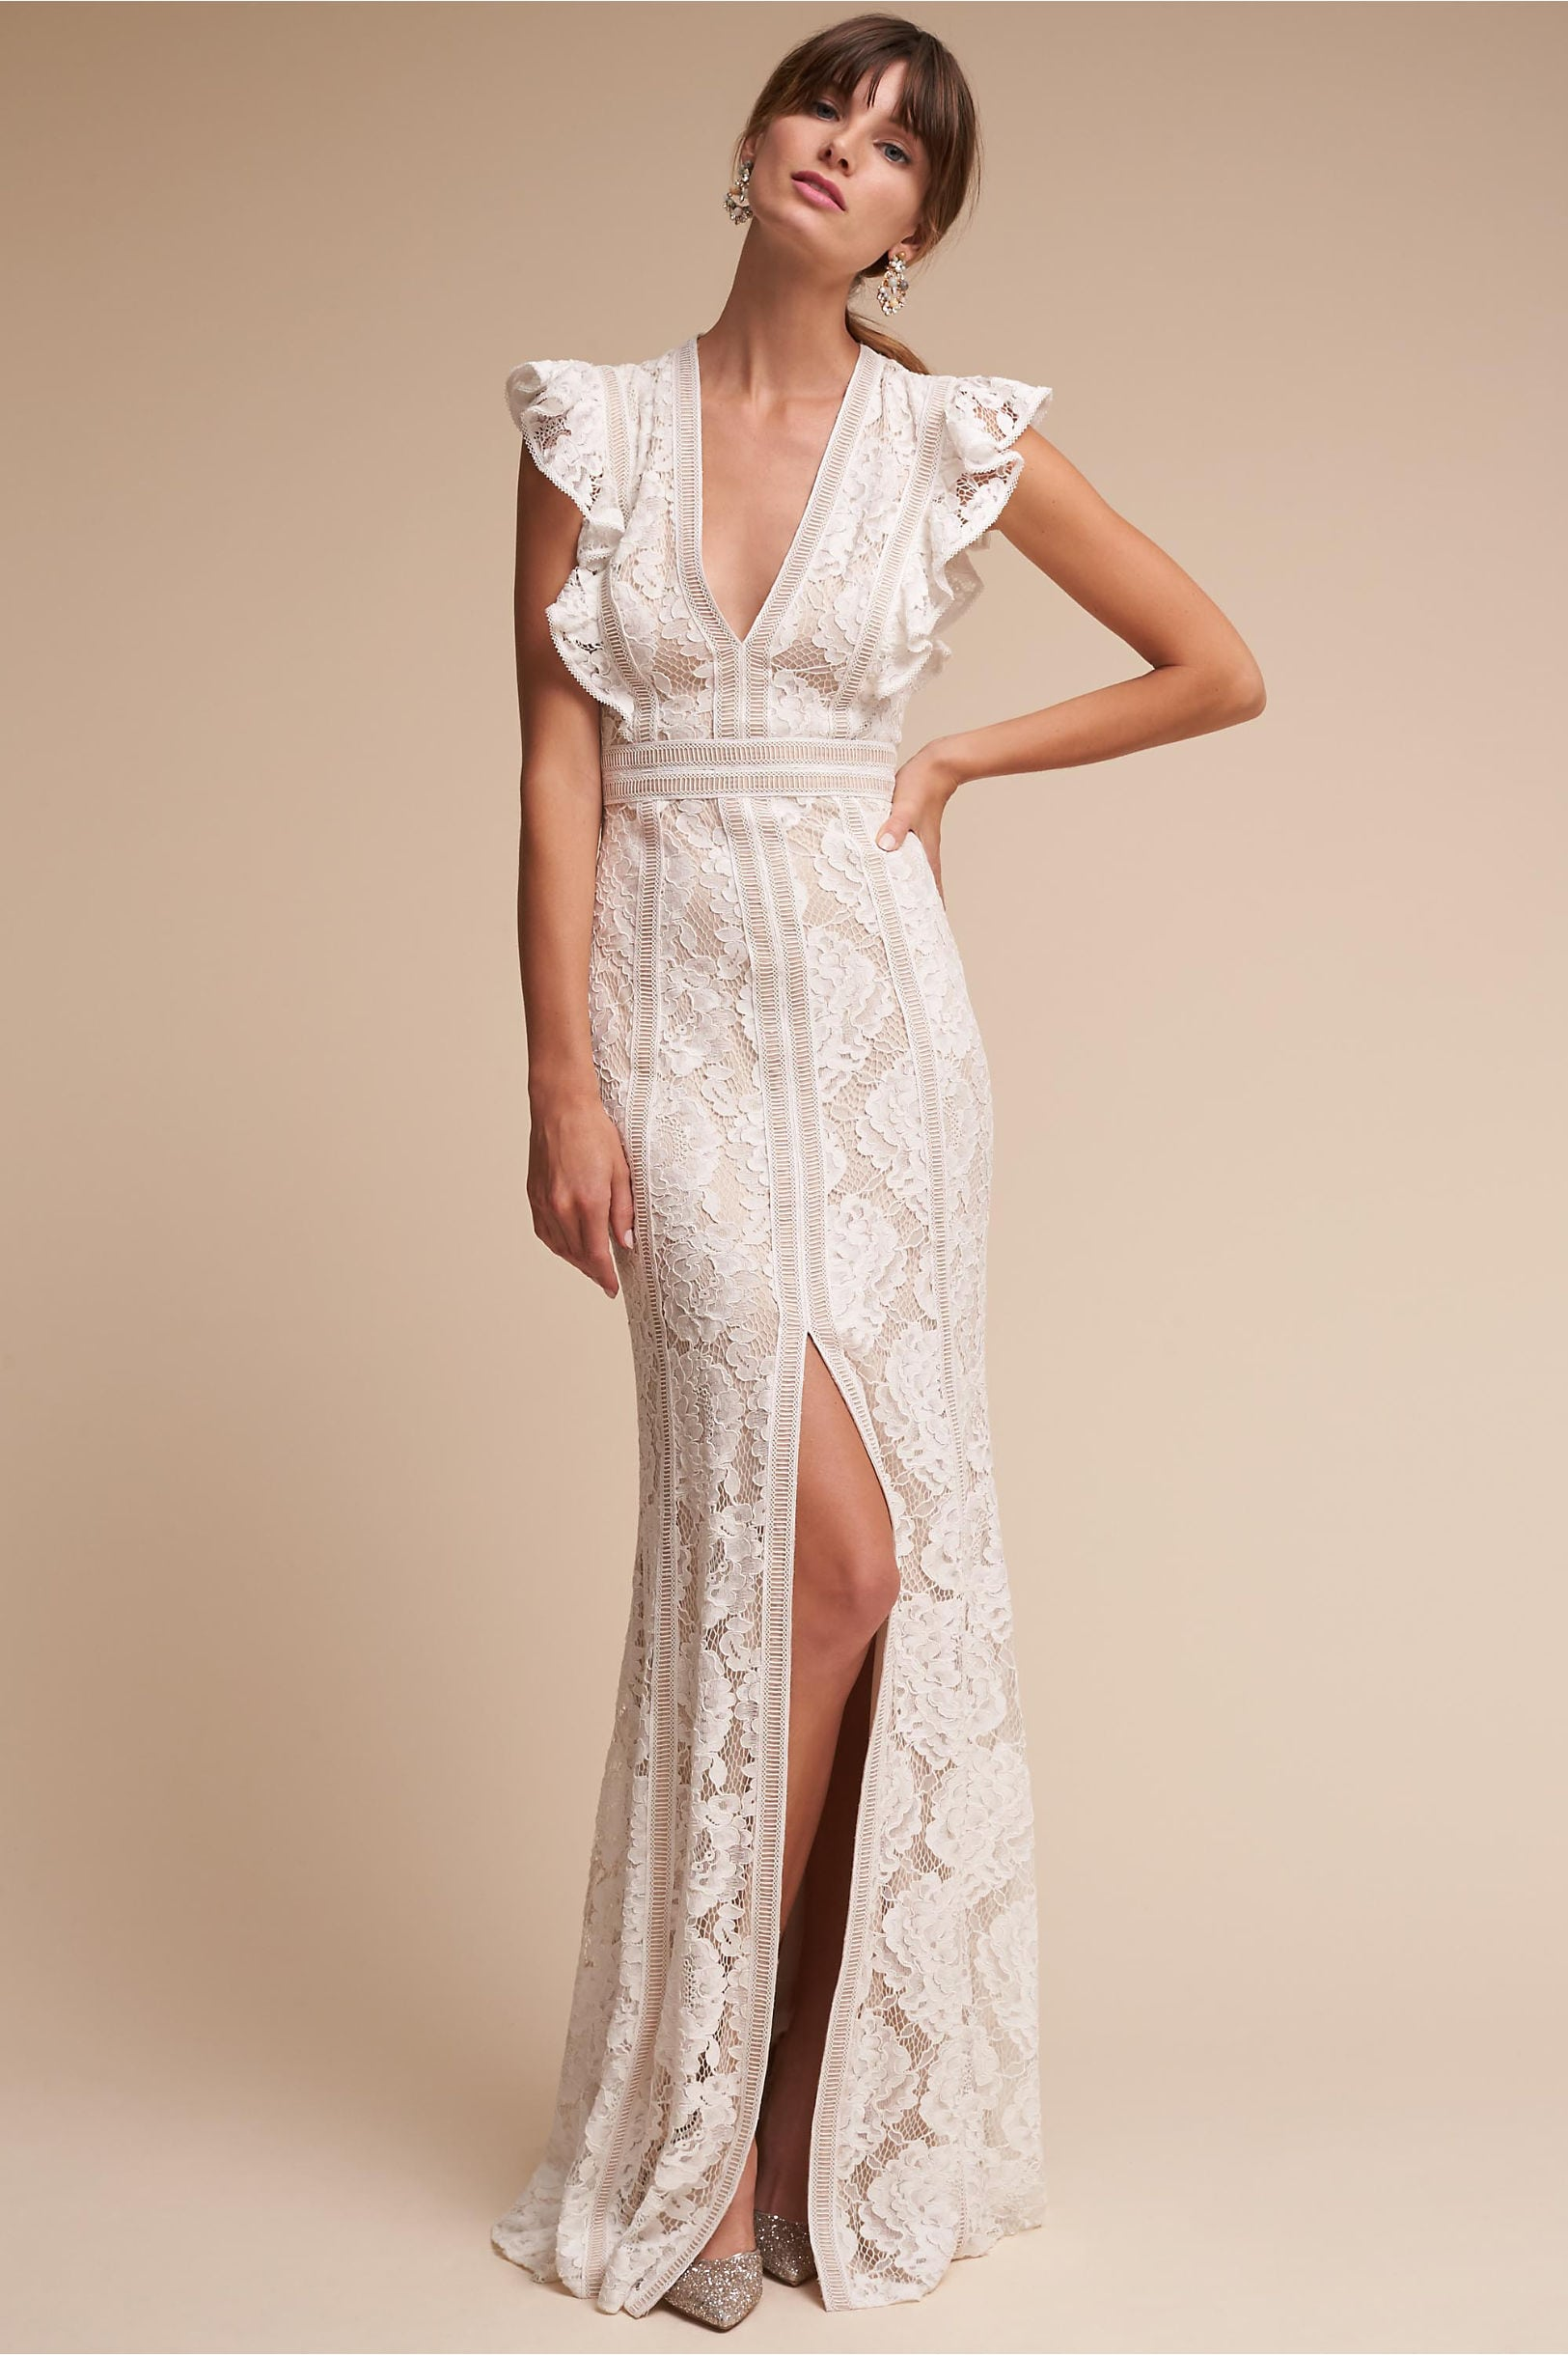 Placid Gown from BHLDN: vertical lace gown with deep v and flutter sleeve